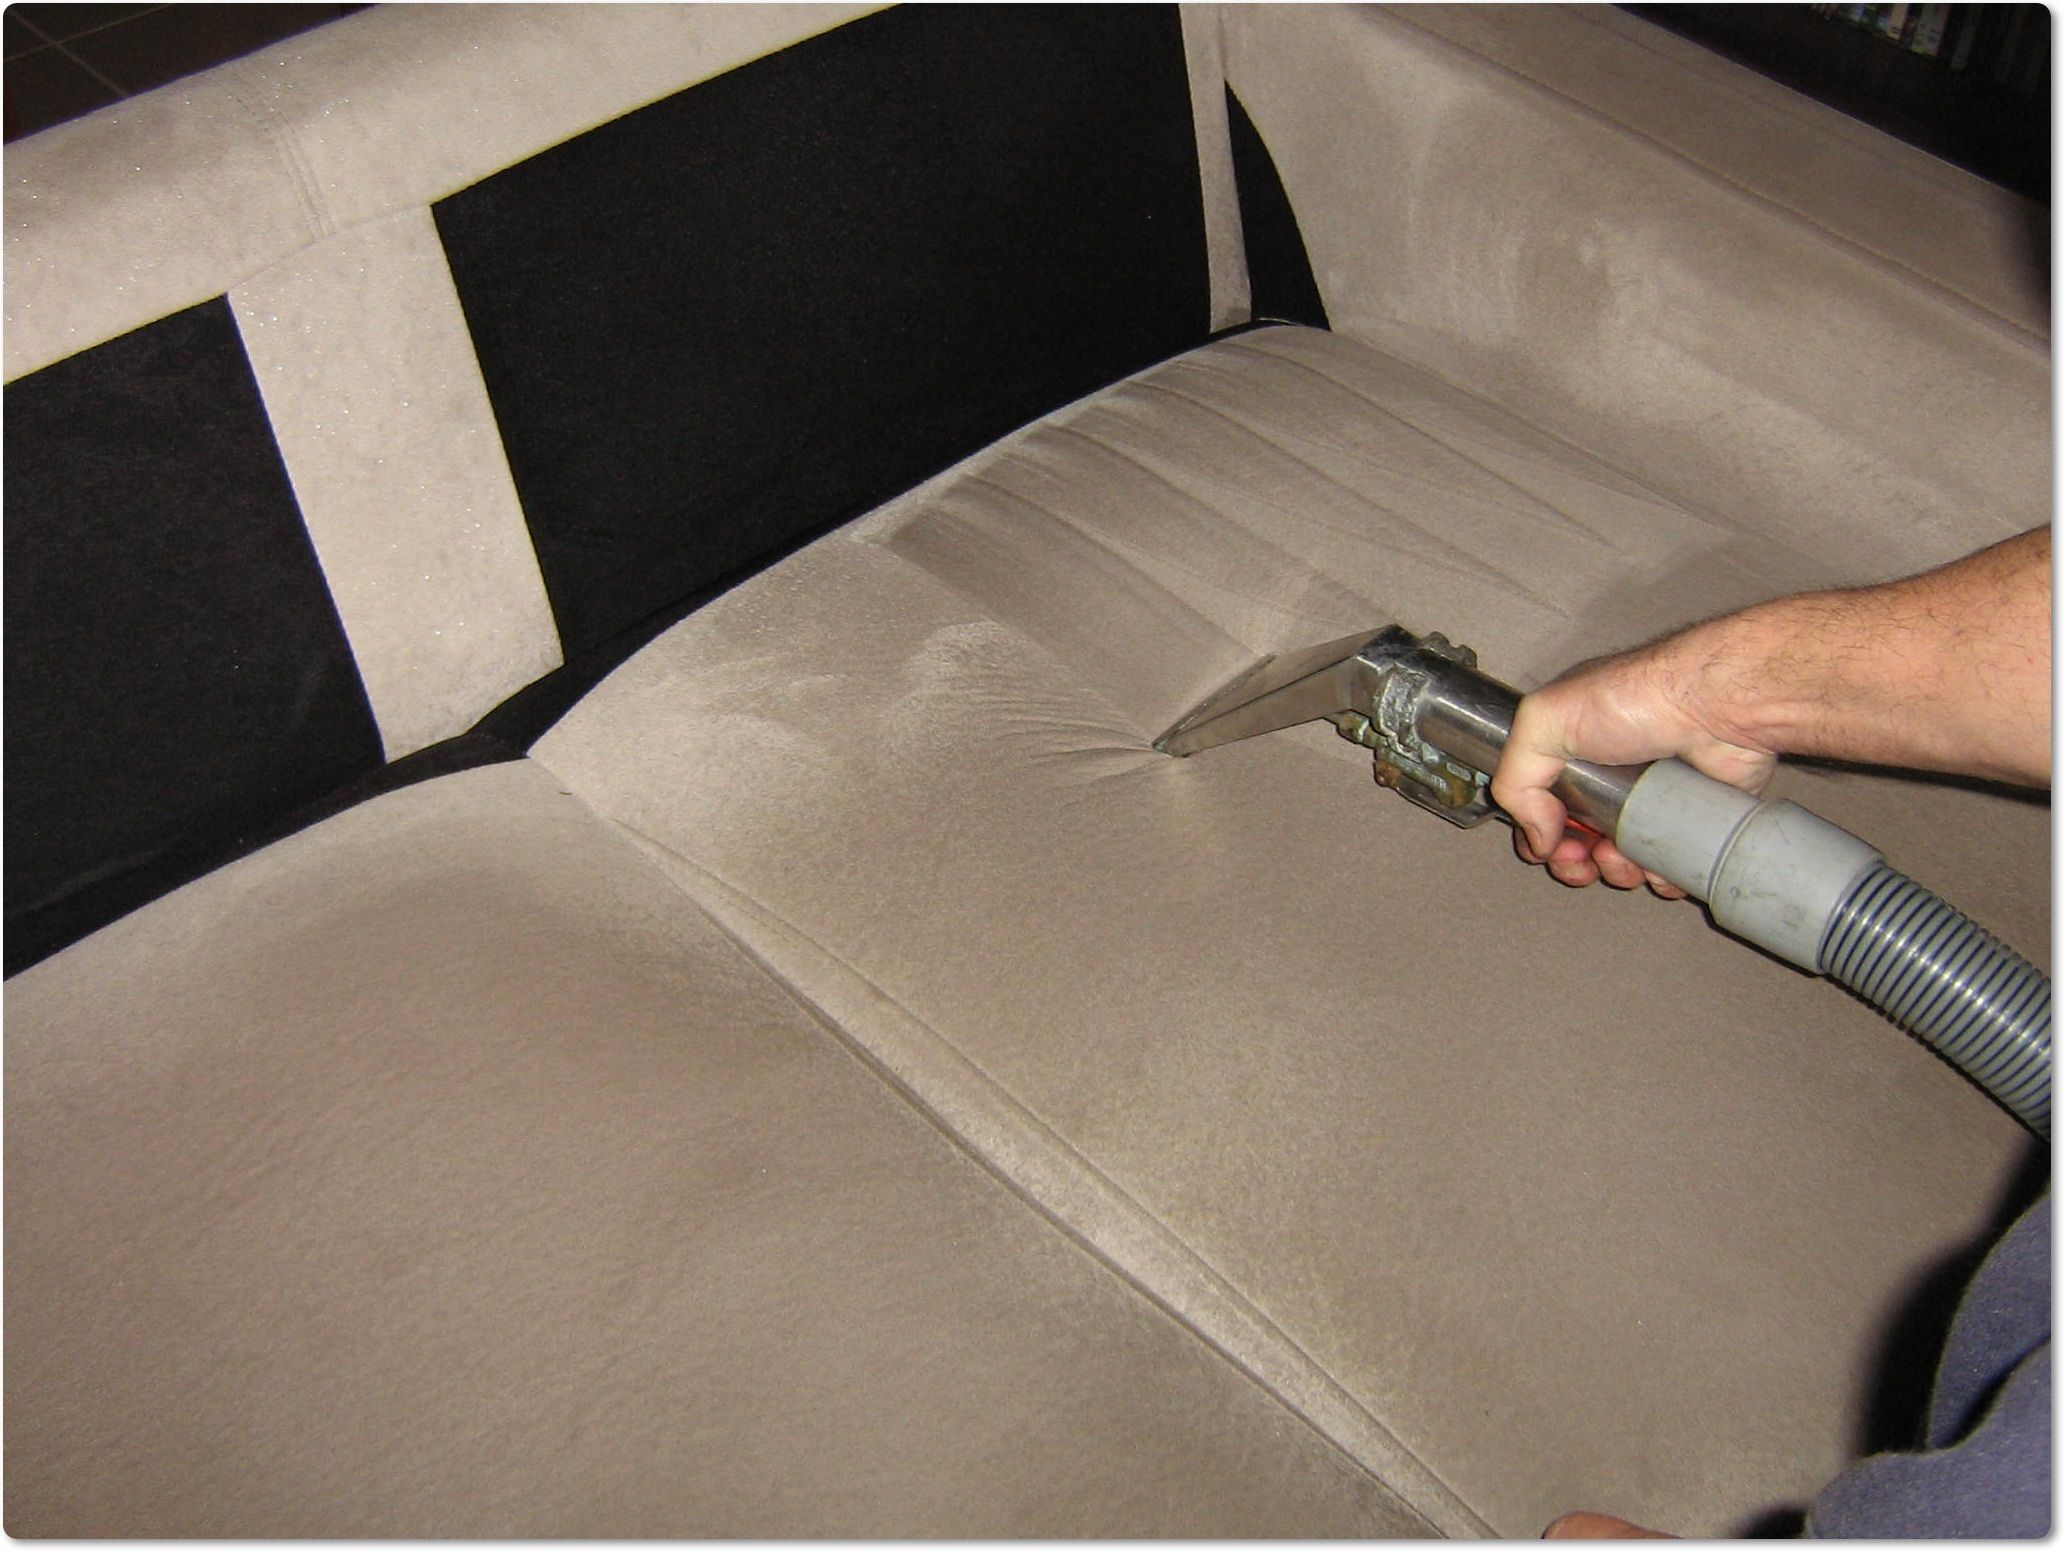 couch size large sofa cleaners of cleaner upholstery spray cleaning steam full furniture